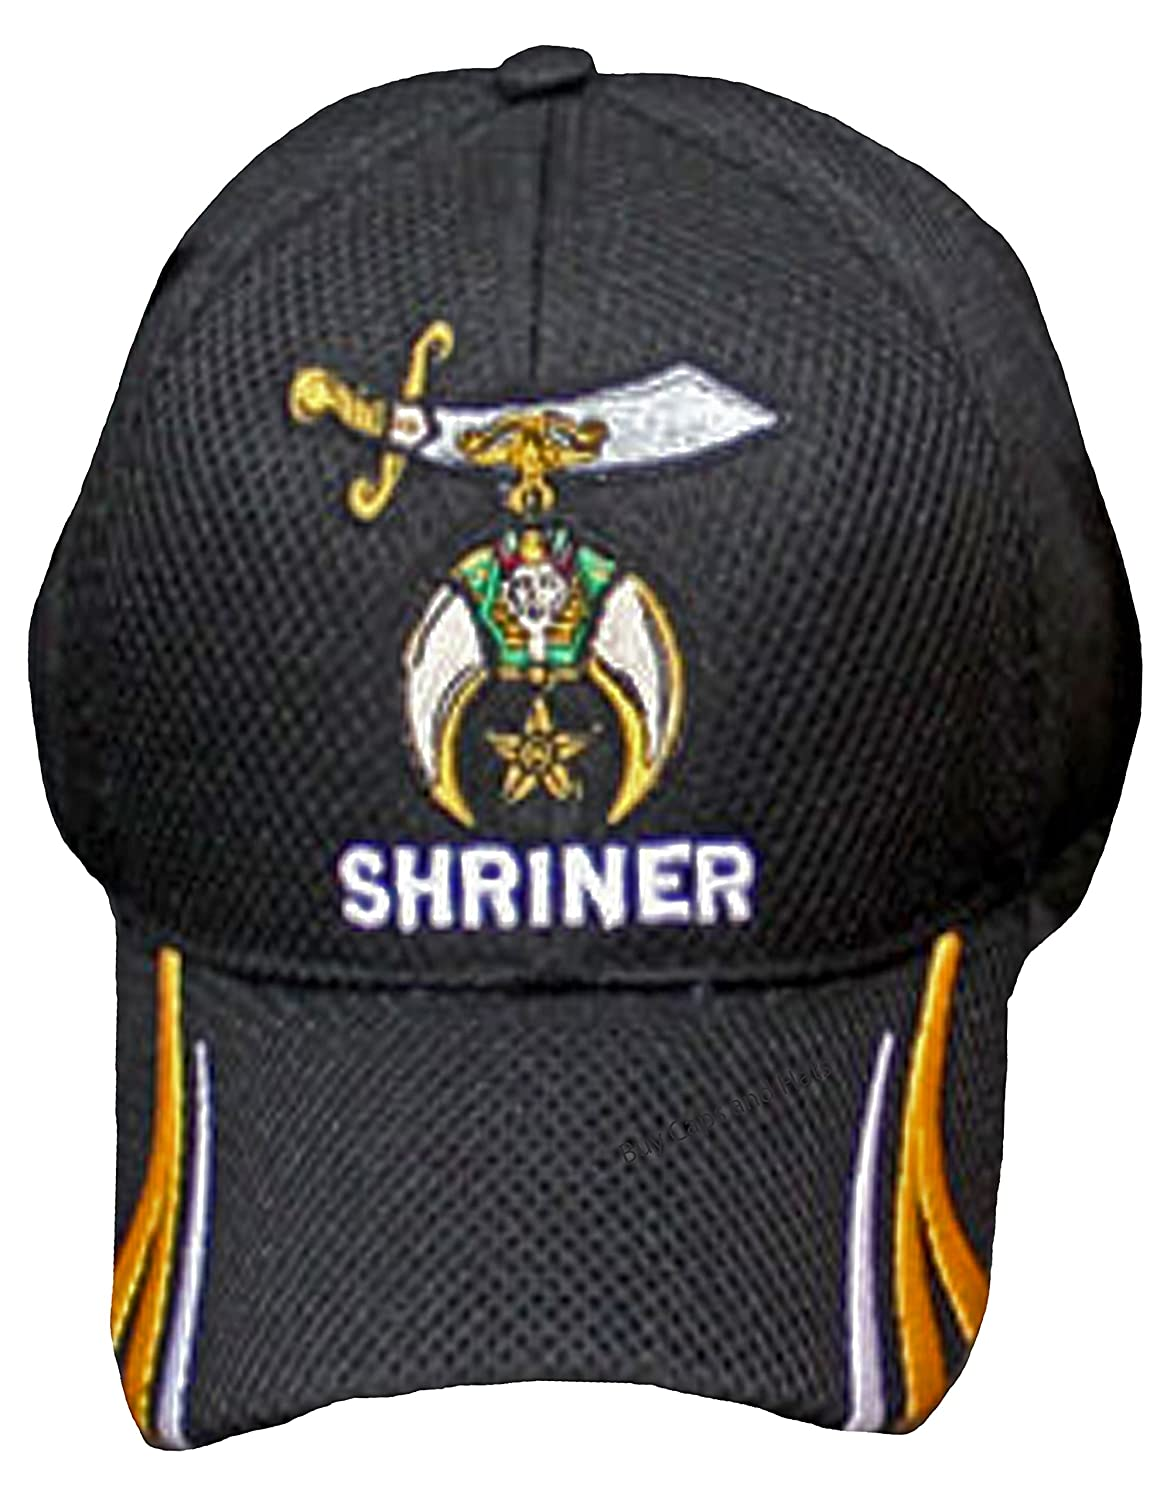 Buy Caps And Hats Shriner Hat Baseball Masonic Shriners Mens Black Baseball Cap Bumper Sticker